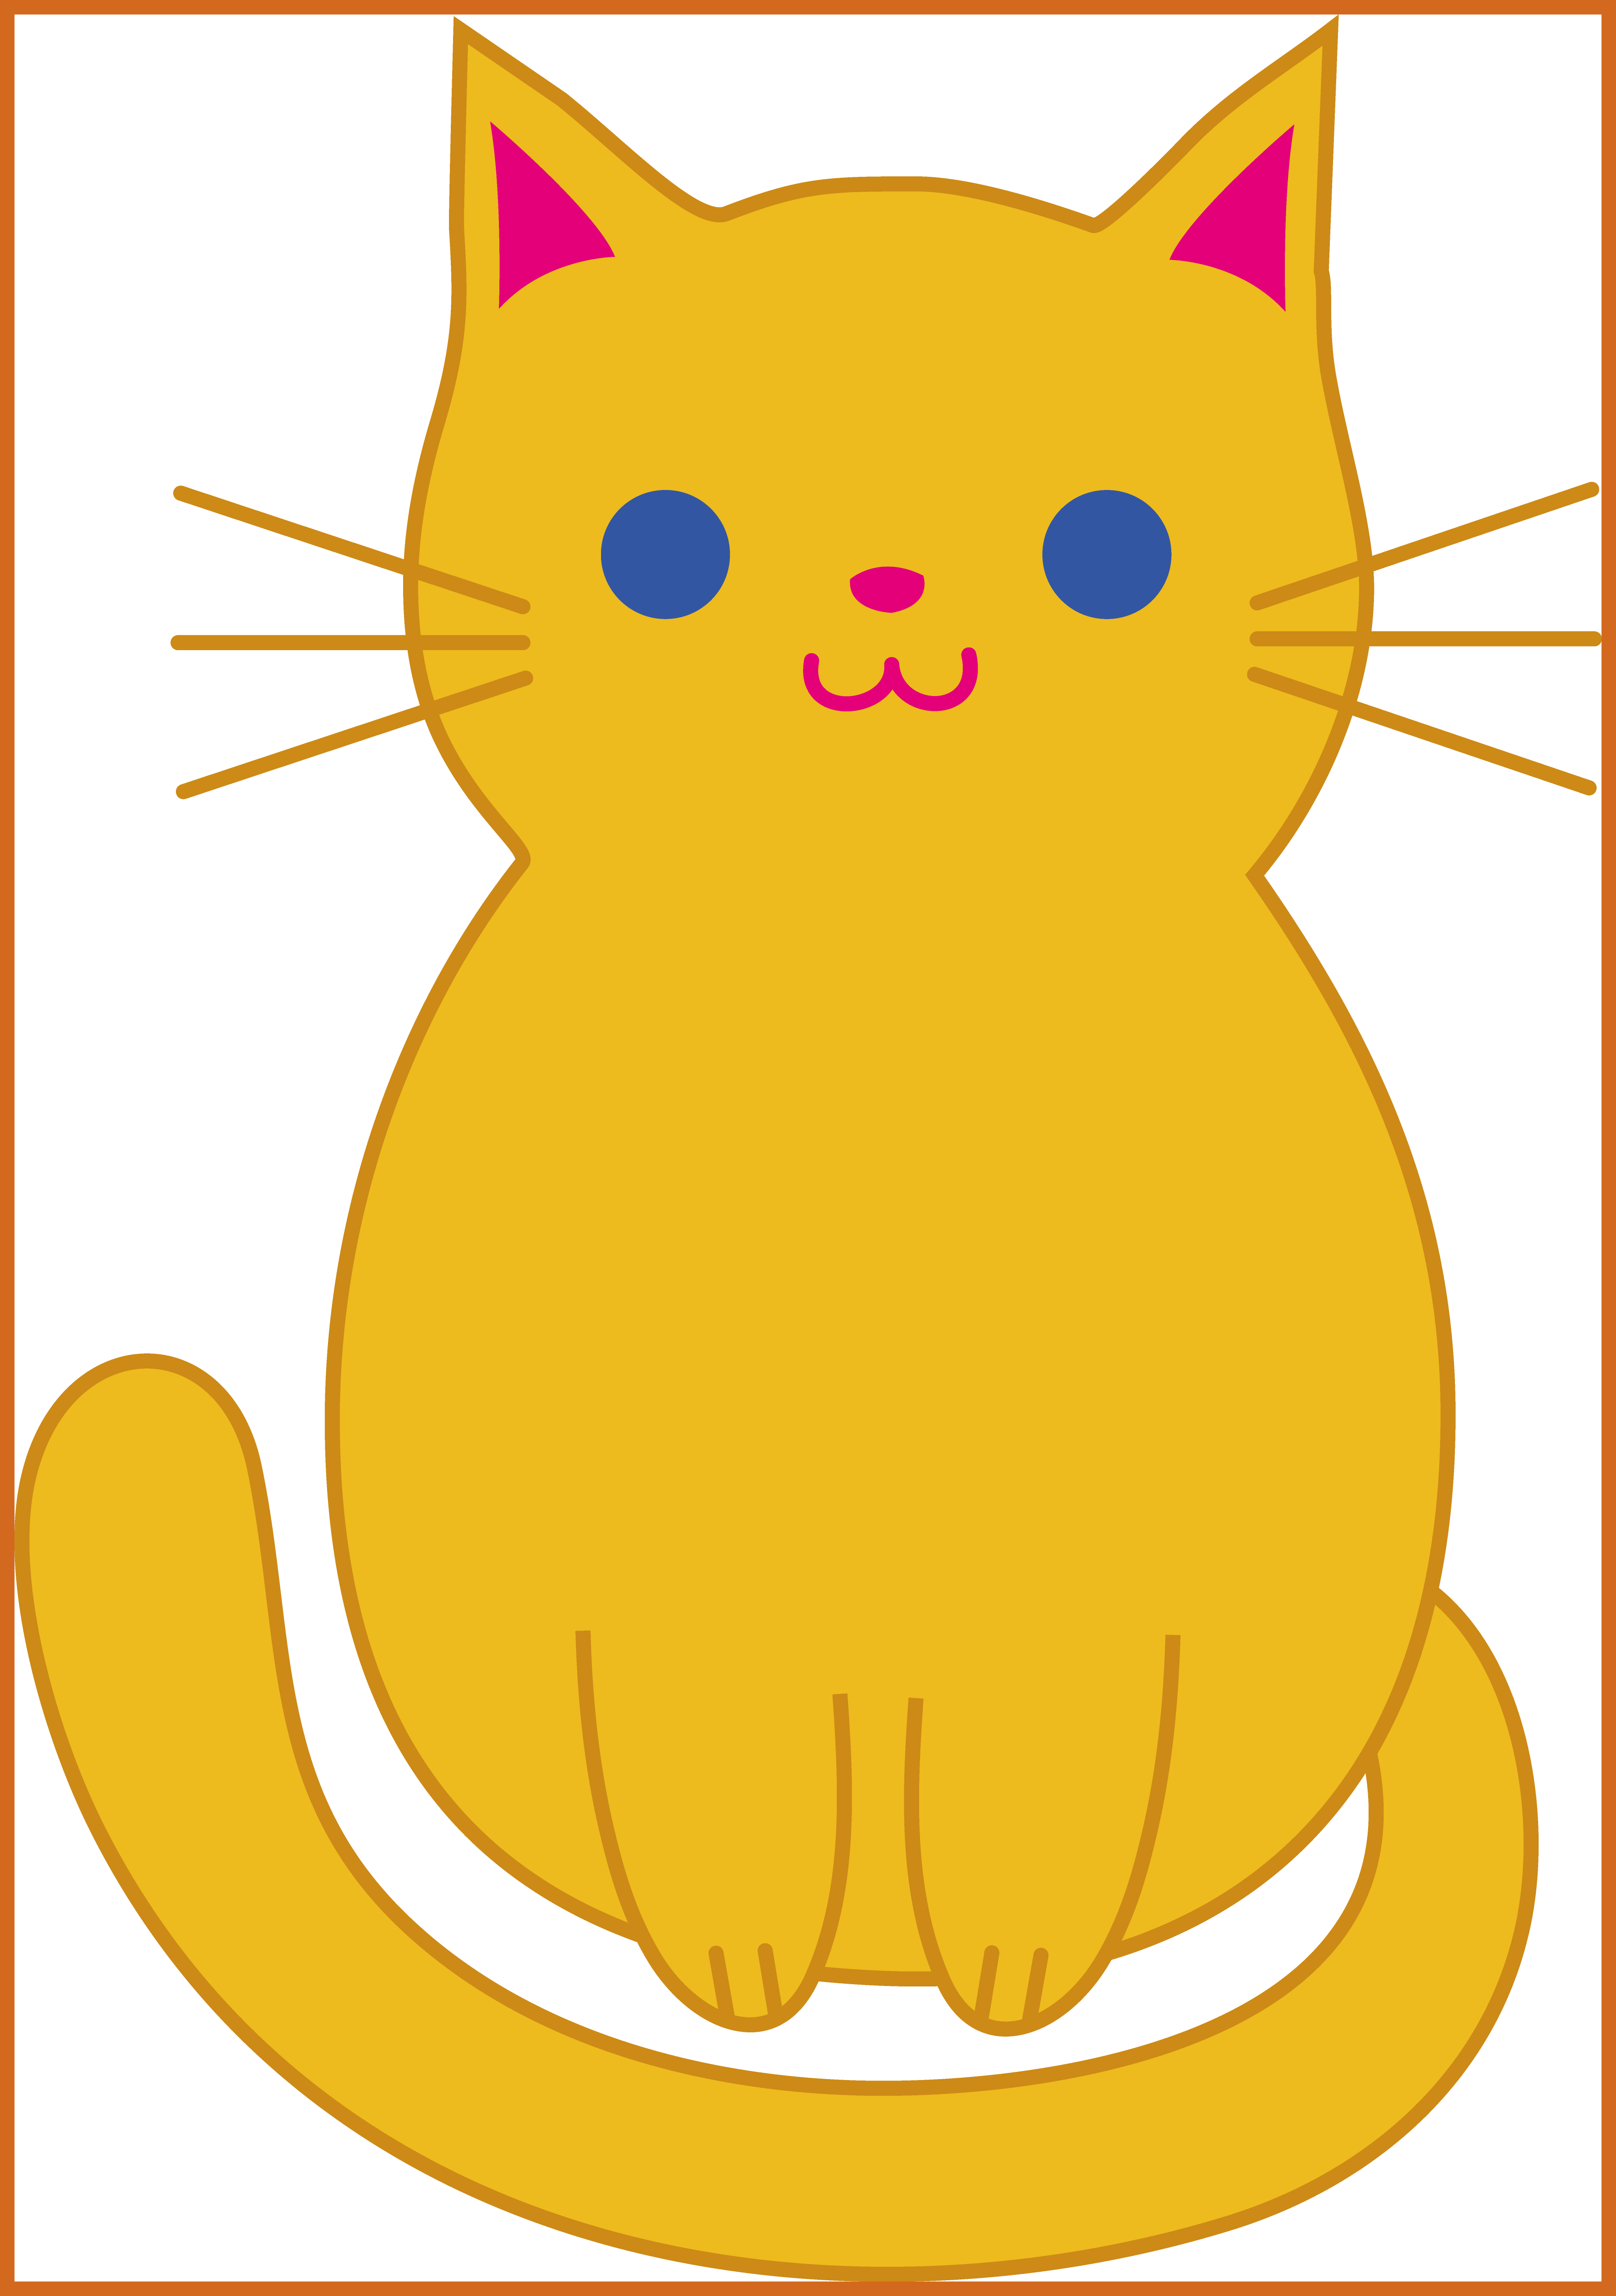 Cat lover flag clipart banner library library Cute Cat Wallpaper Clipart - Vector And Clip Art Inspiration • banner library library